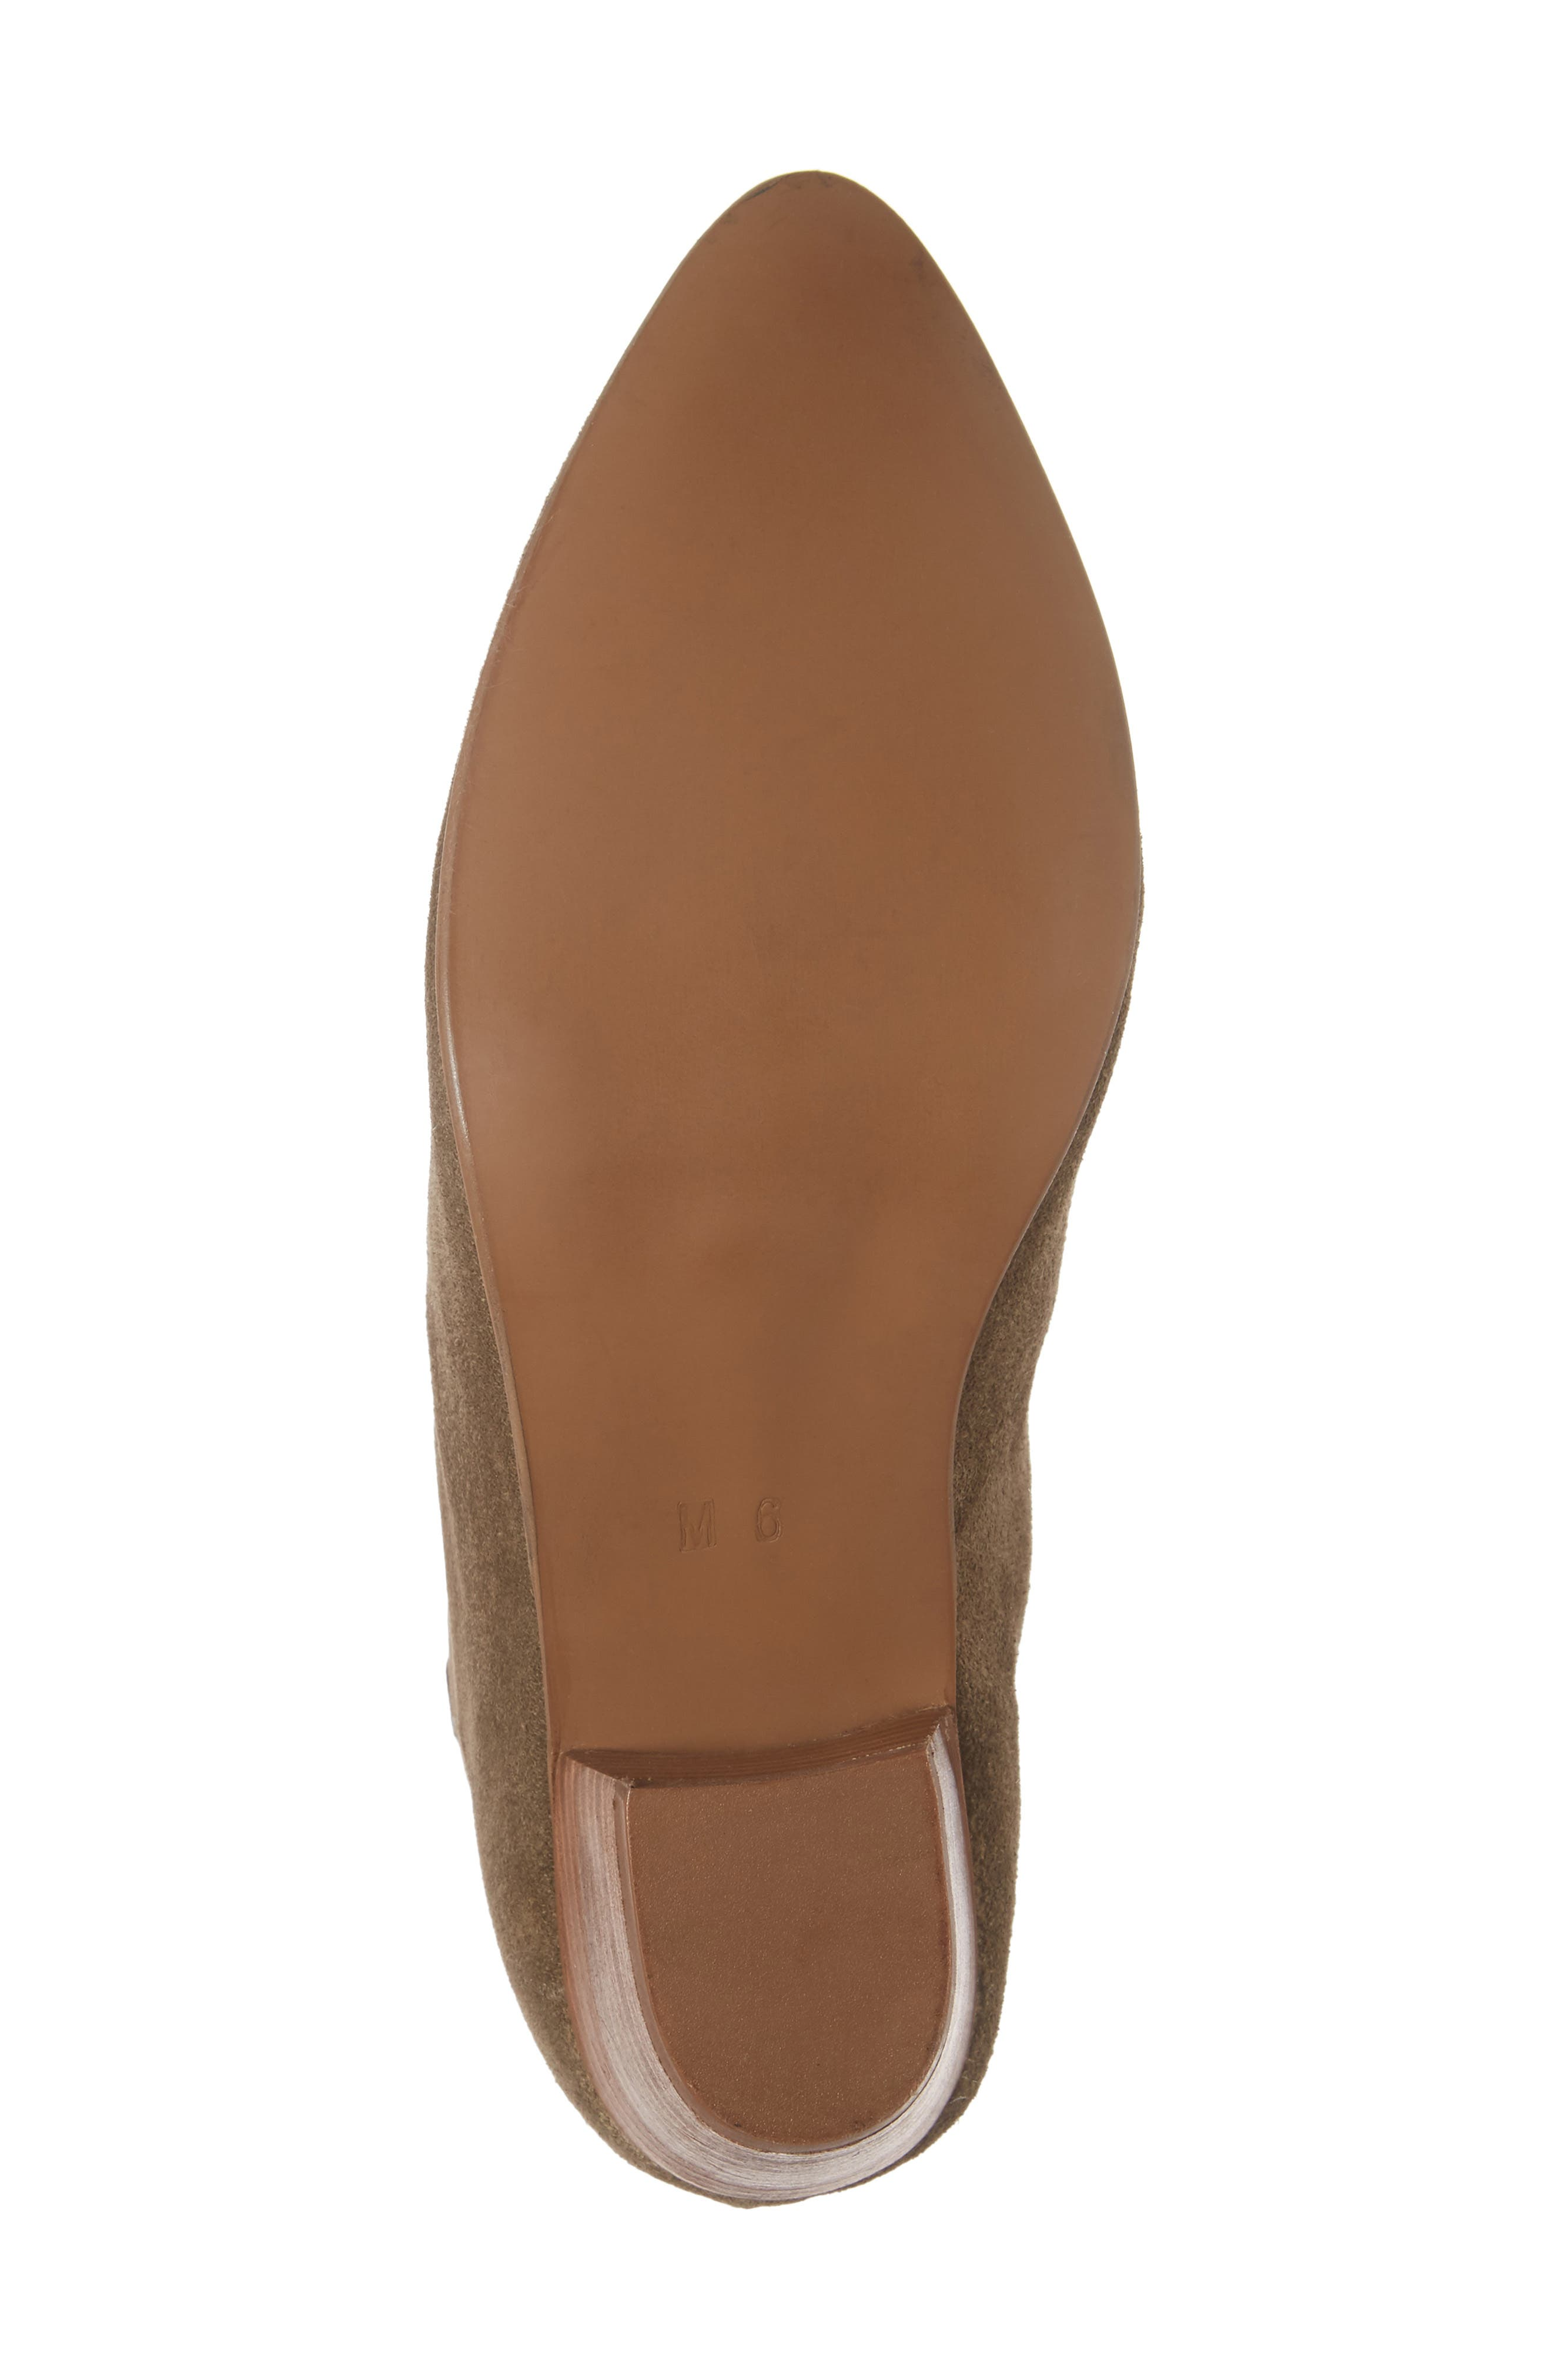 Wildcat Bootie,                             Alternate thumbnail 6, color,                             Taupe Suede